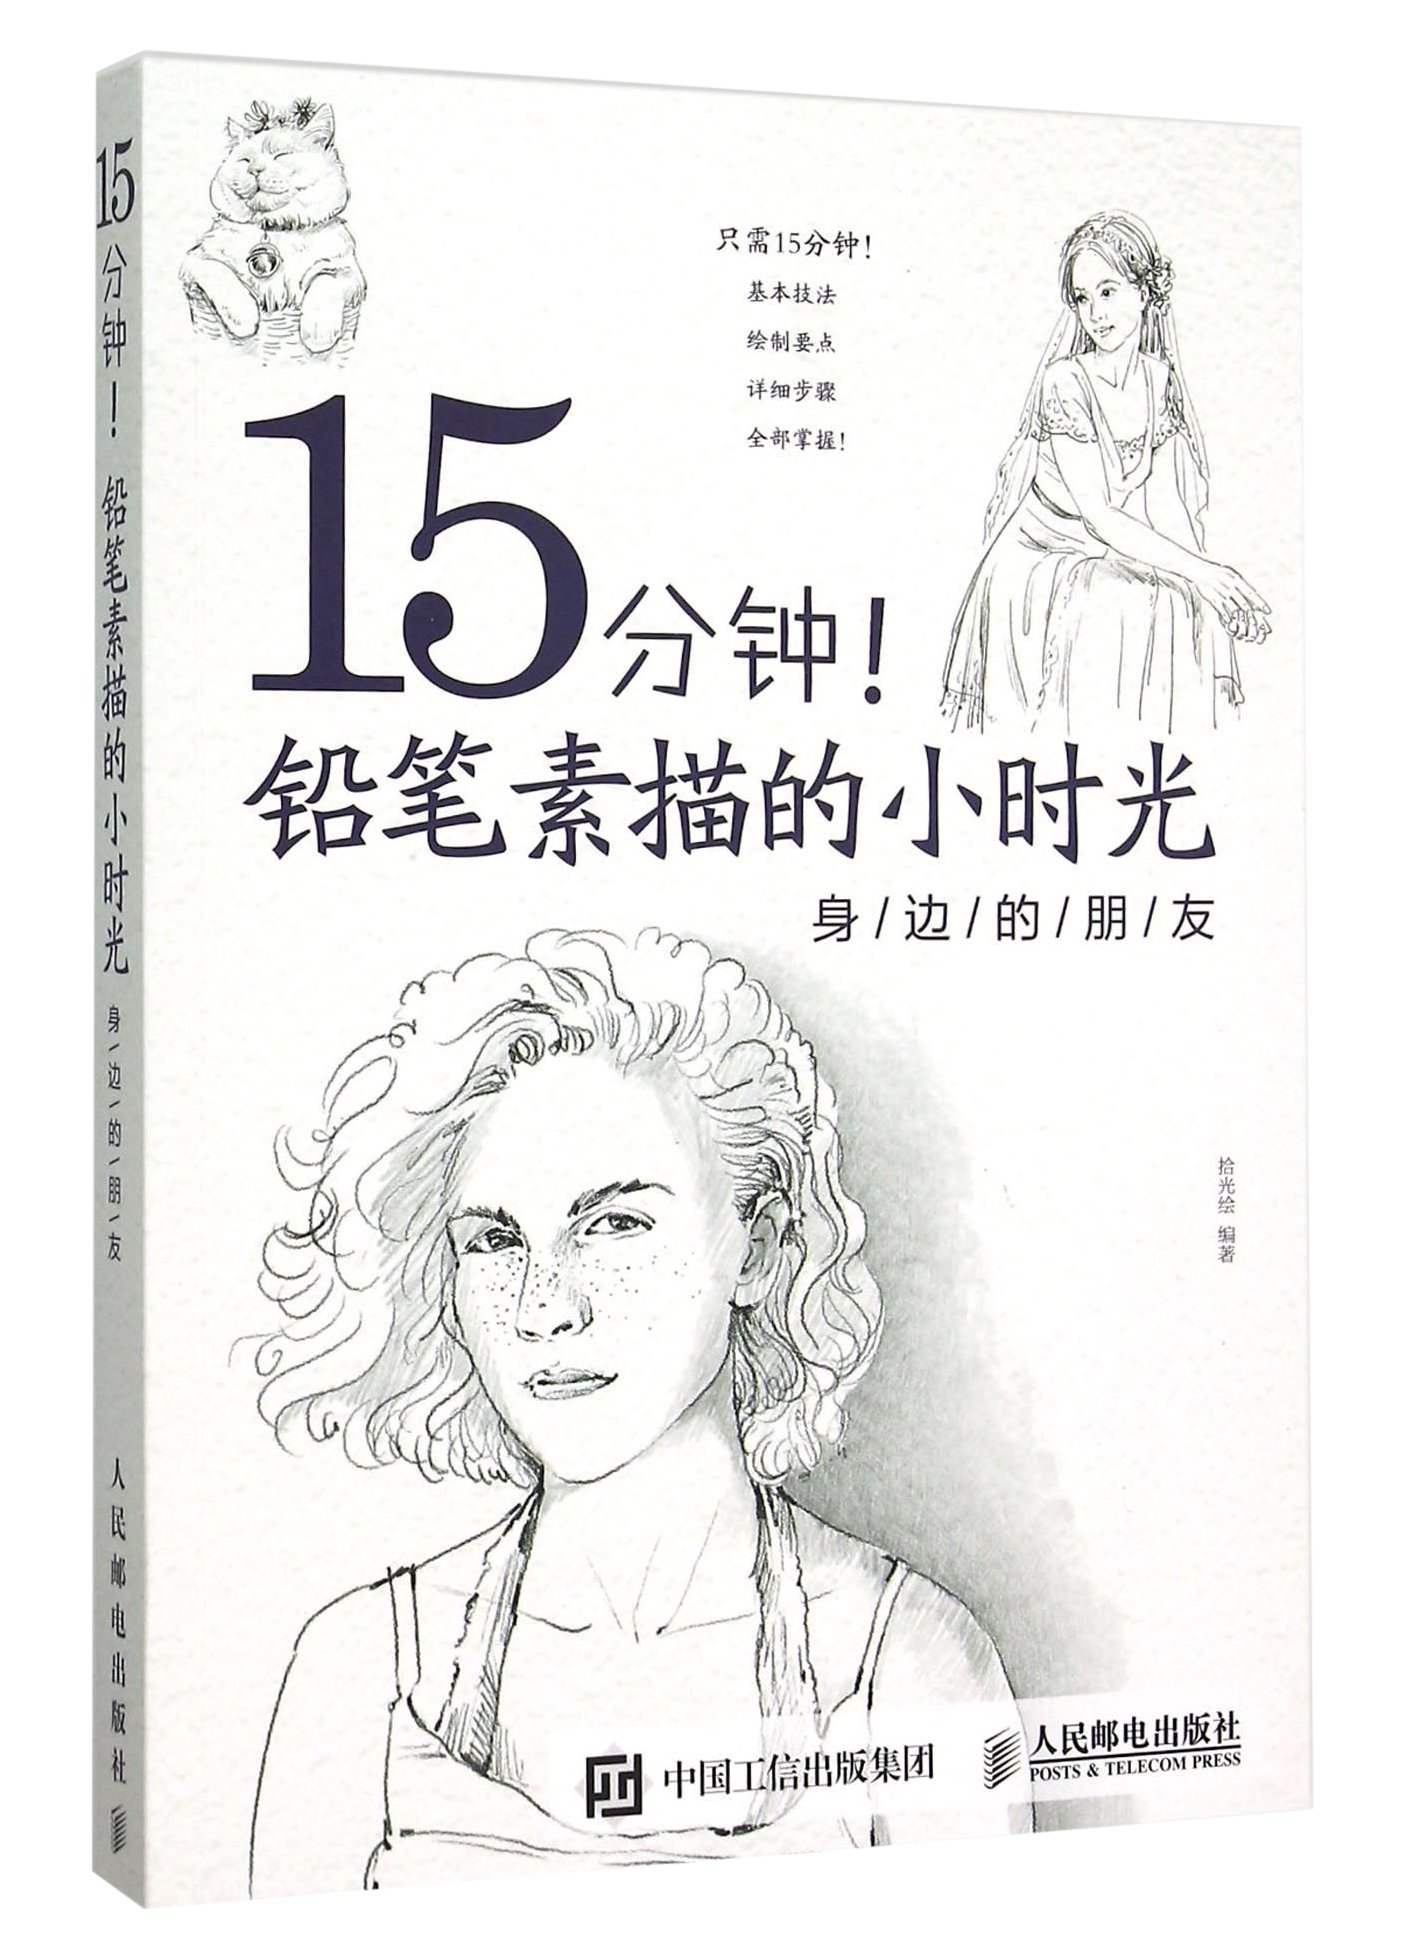 Read Online 15 Minutes! Smart Time of Pencil Sketch (Friends Around) (Chinese Edition) PDF